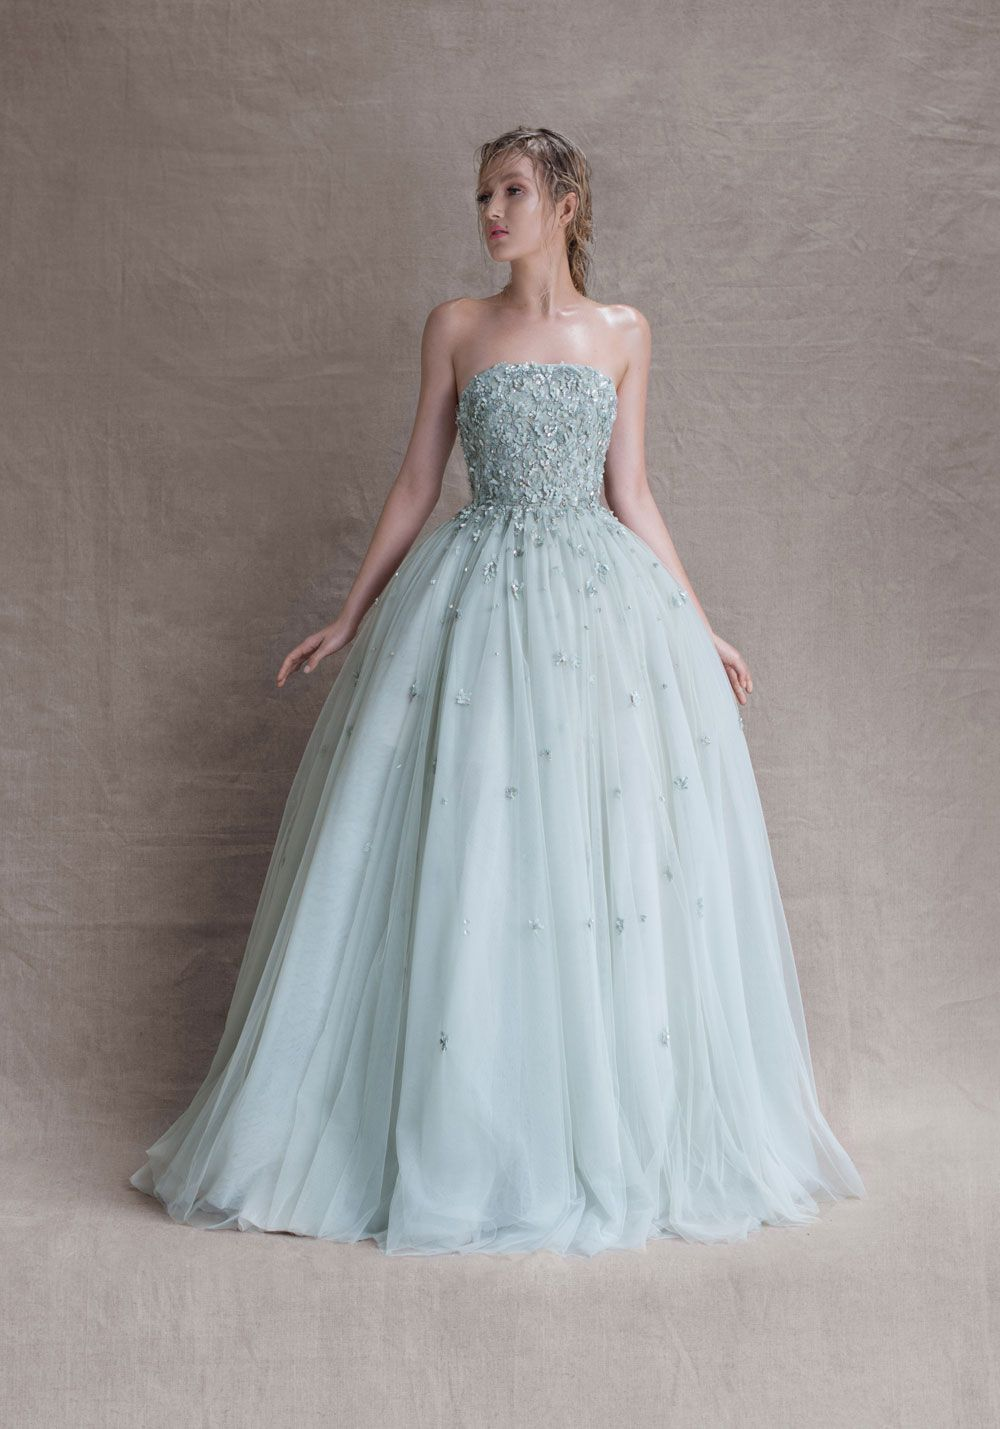 Dreaming about wearing a wedding dress   SS Couture  Paolo Sebastian  In My Dreams  Pinterest